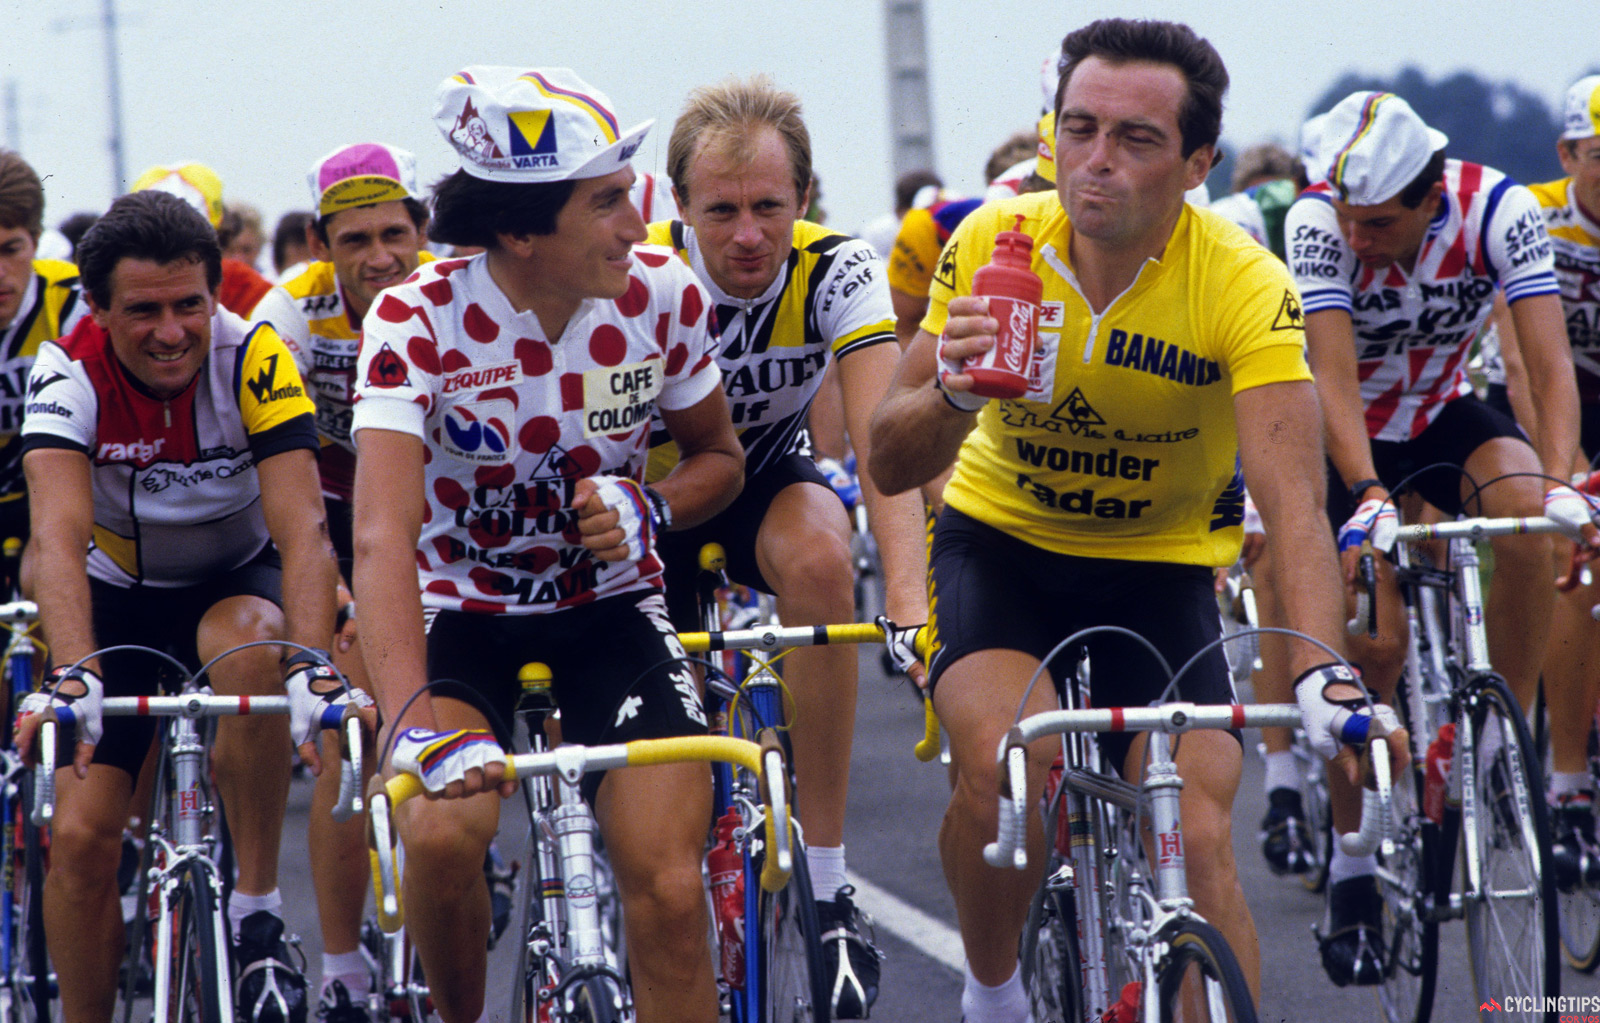 Mountains leader Lucho Herrera with five-time Tour de France winner Bernard Hinault. The odds of finding more riders like Herrera and Nairo Quintana are hampered by the issues involving cycling in Colombia.